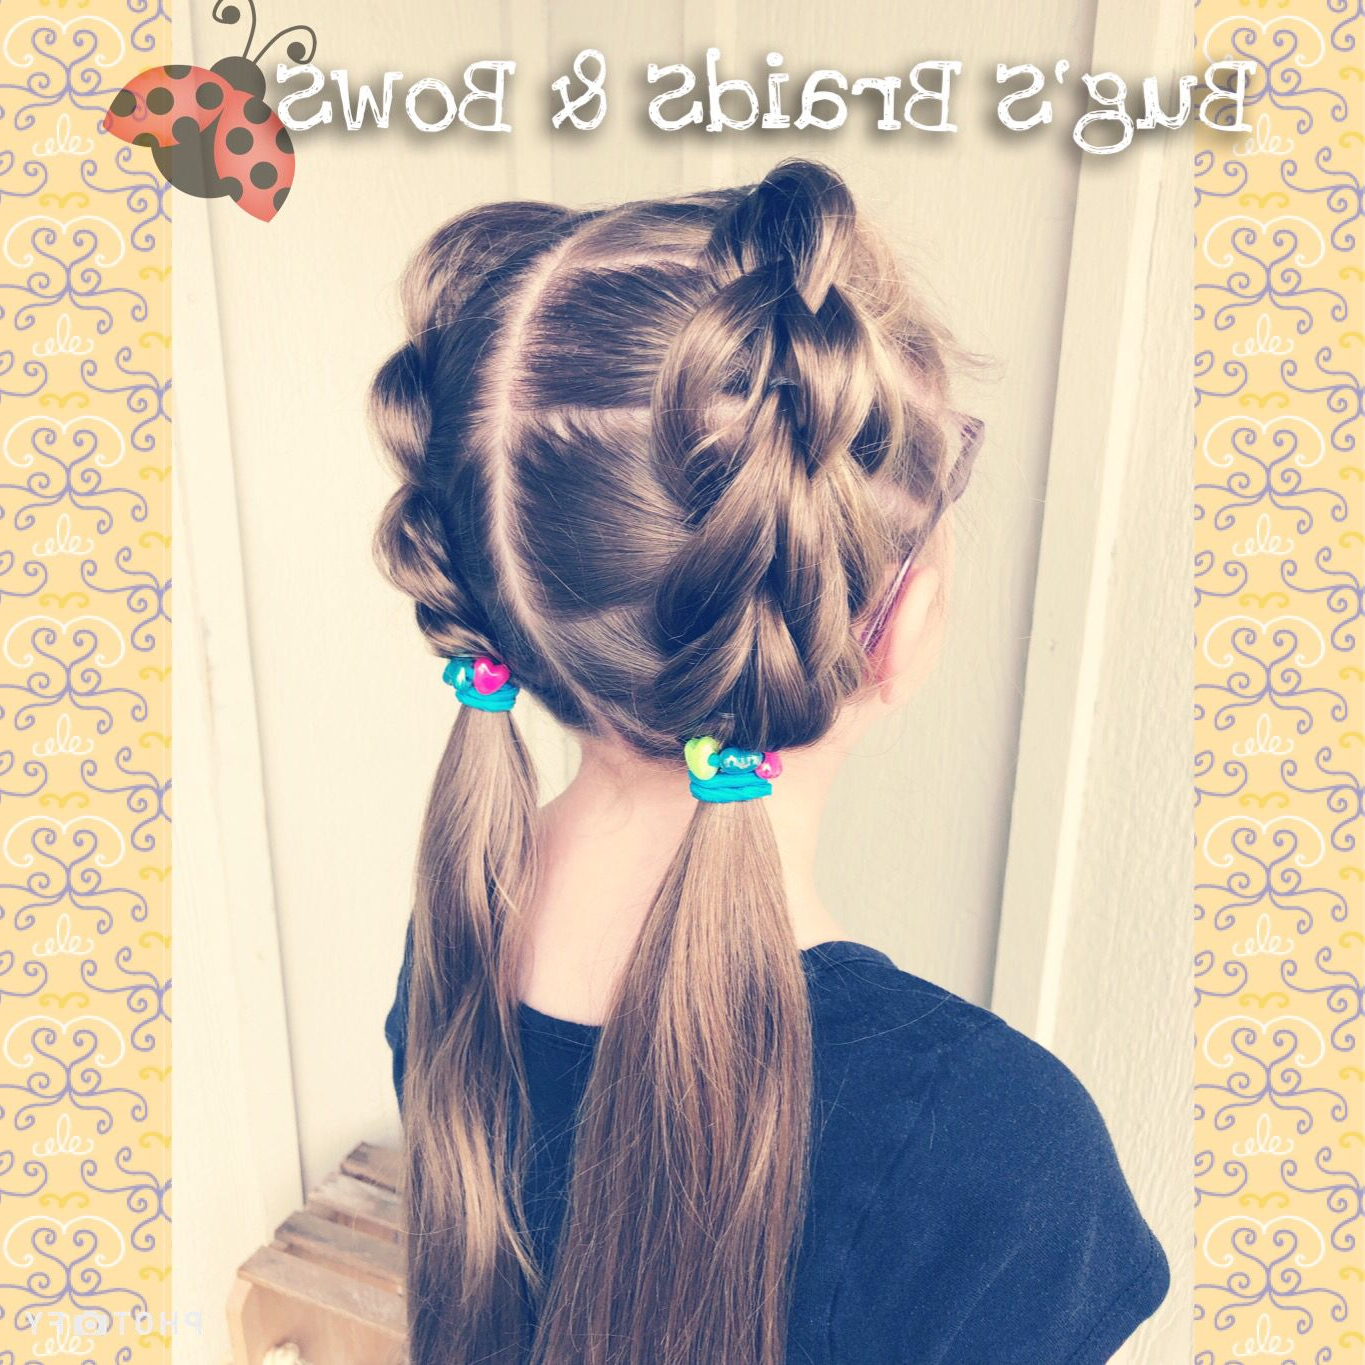 3 Strand Pull Through Braided Pigtails For Our First Day Regarding Famous Three Strand Pigtails Braided Hairstyles (View 1 of 20)